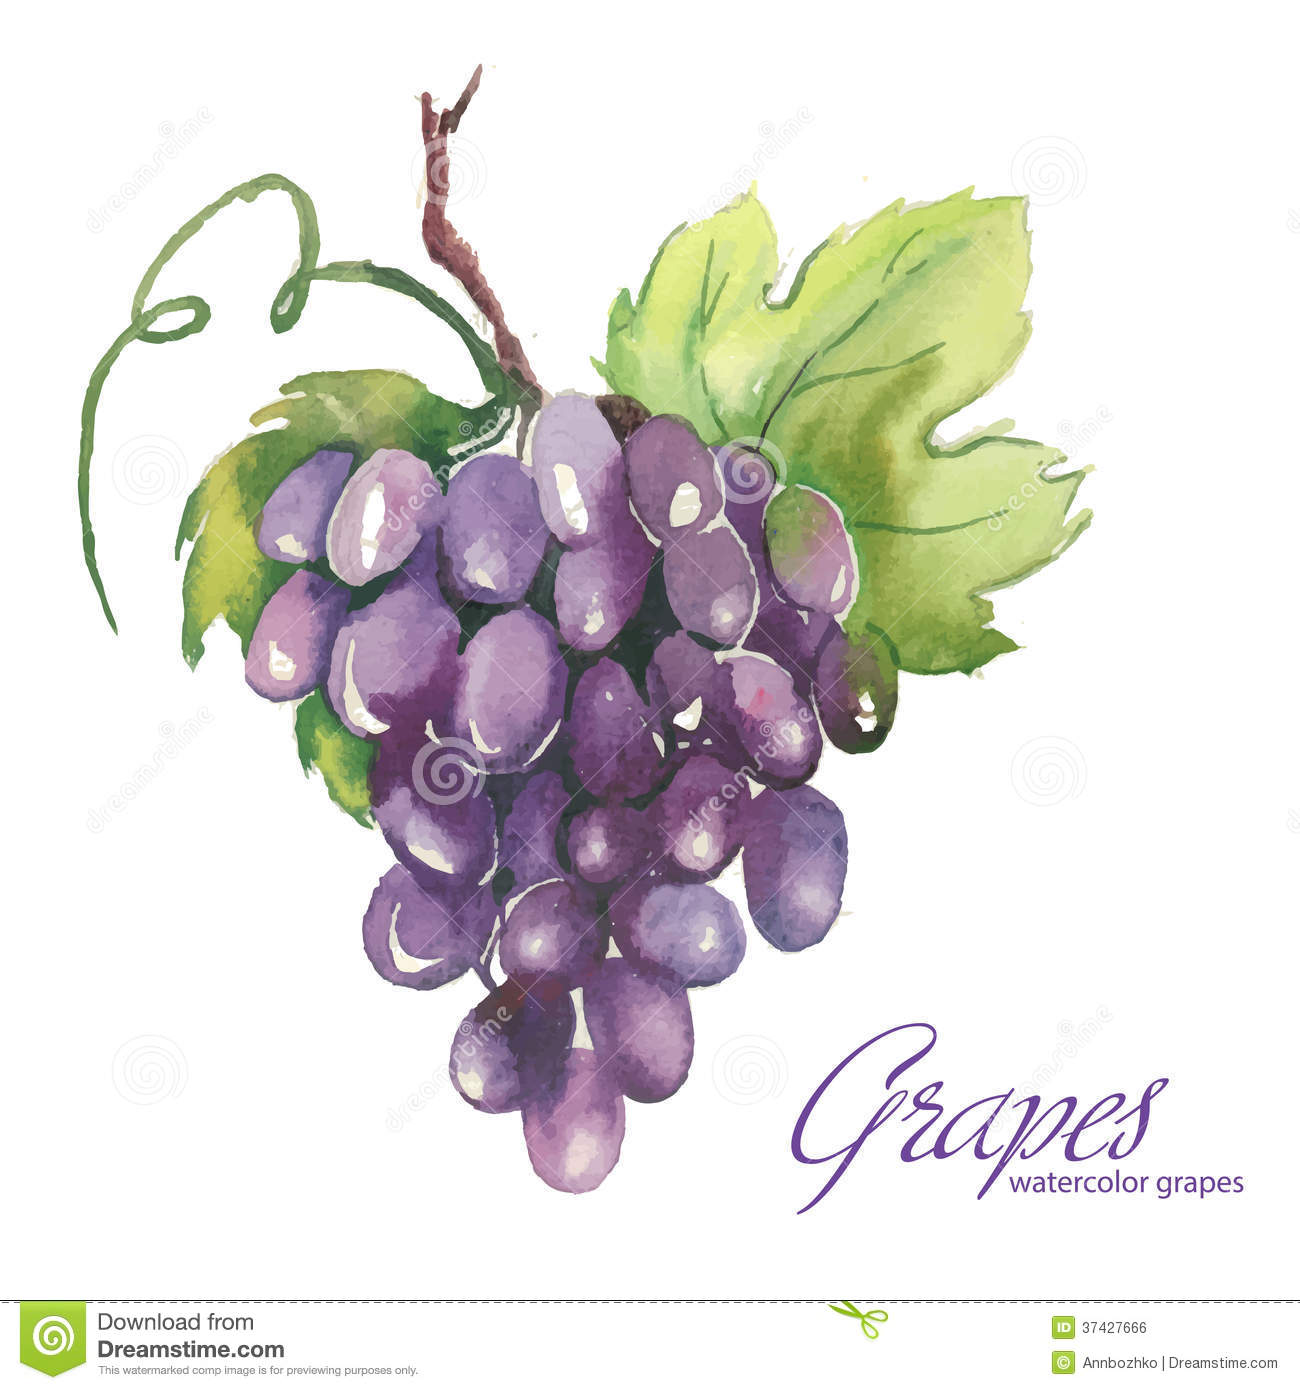 Watercolor Illustrations Of Grapes Royalty Free Stock